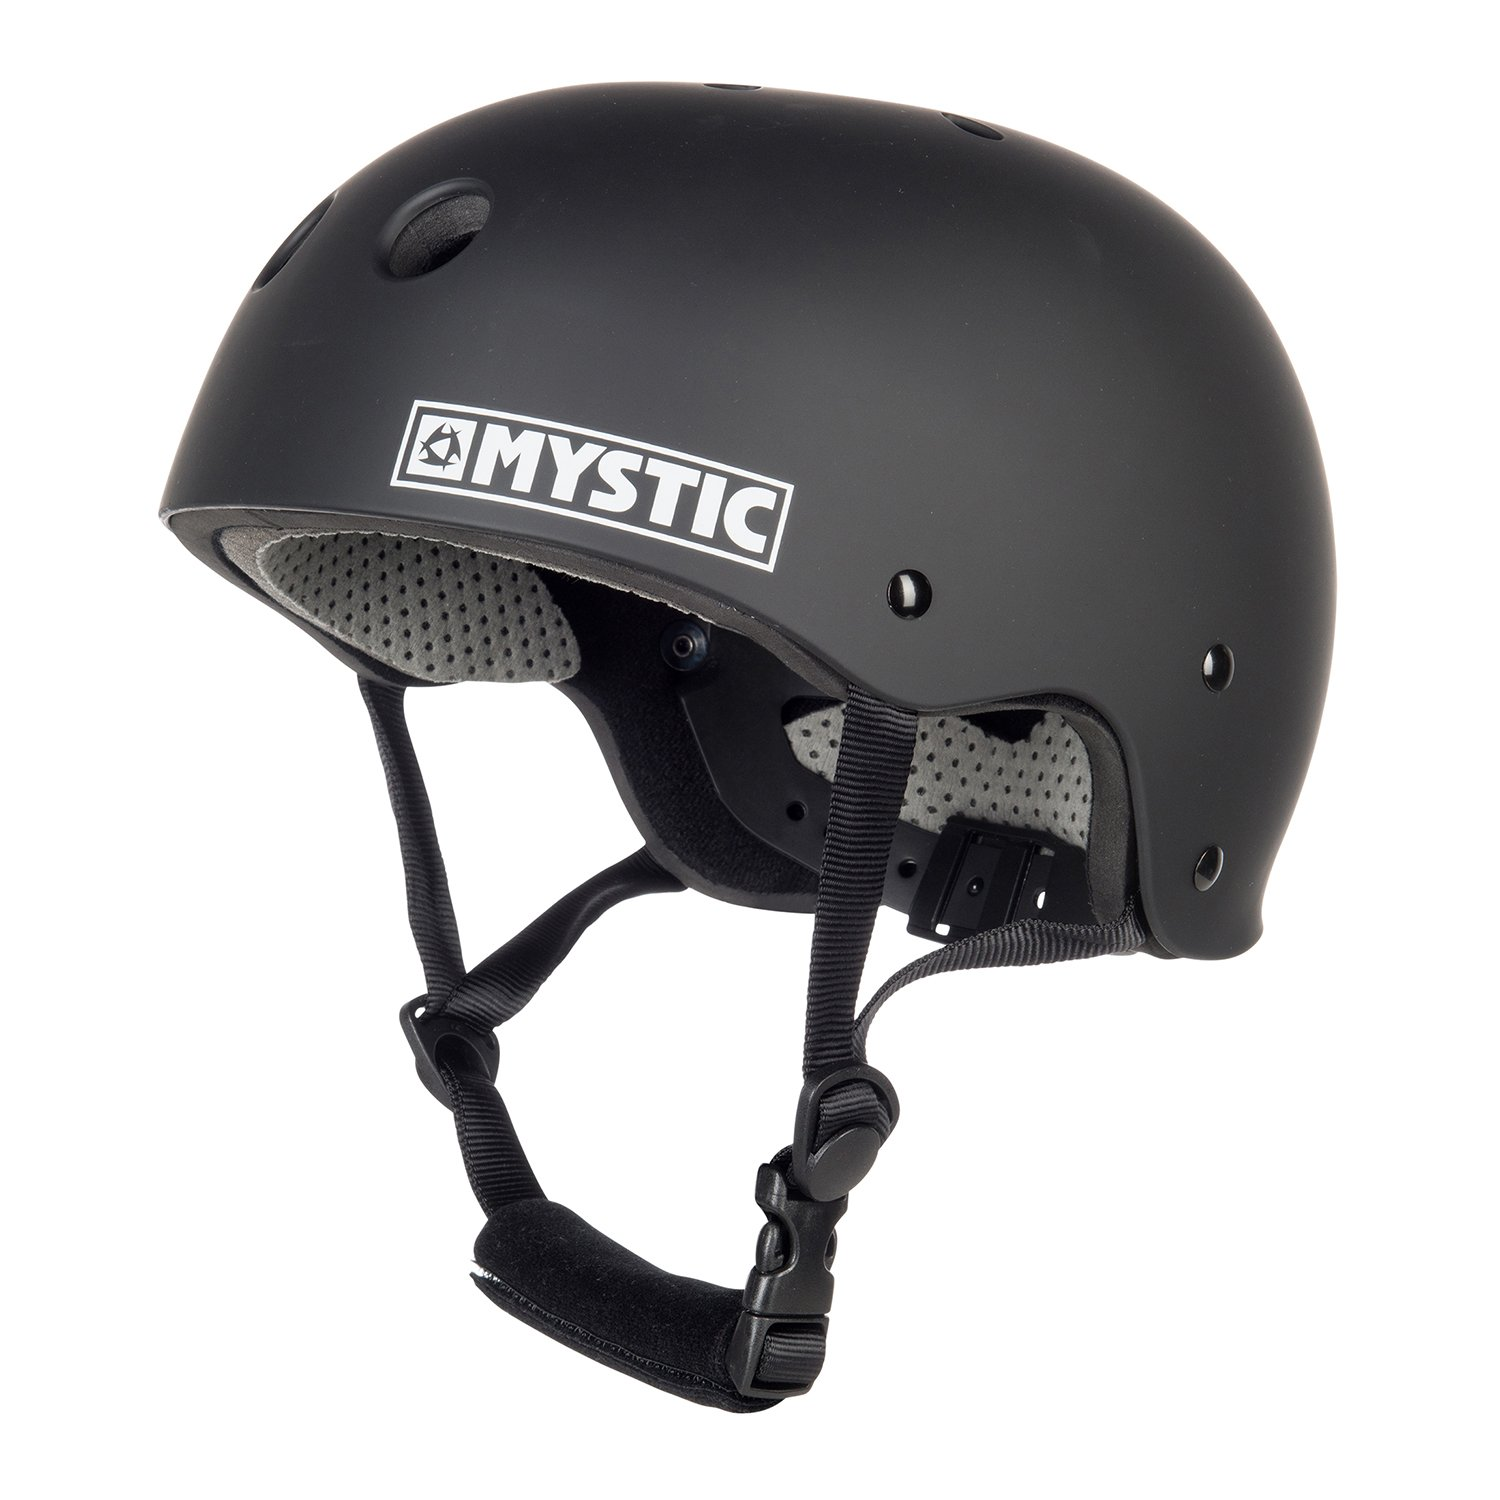 Mystic Watersports - Surf Kitesurf & Windsurfing Mk8 Helmet Black - Unisex - Lightweight - High Impact Thermo Plastic